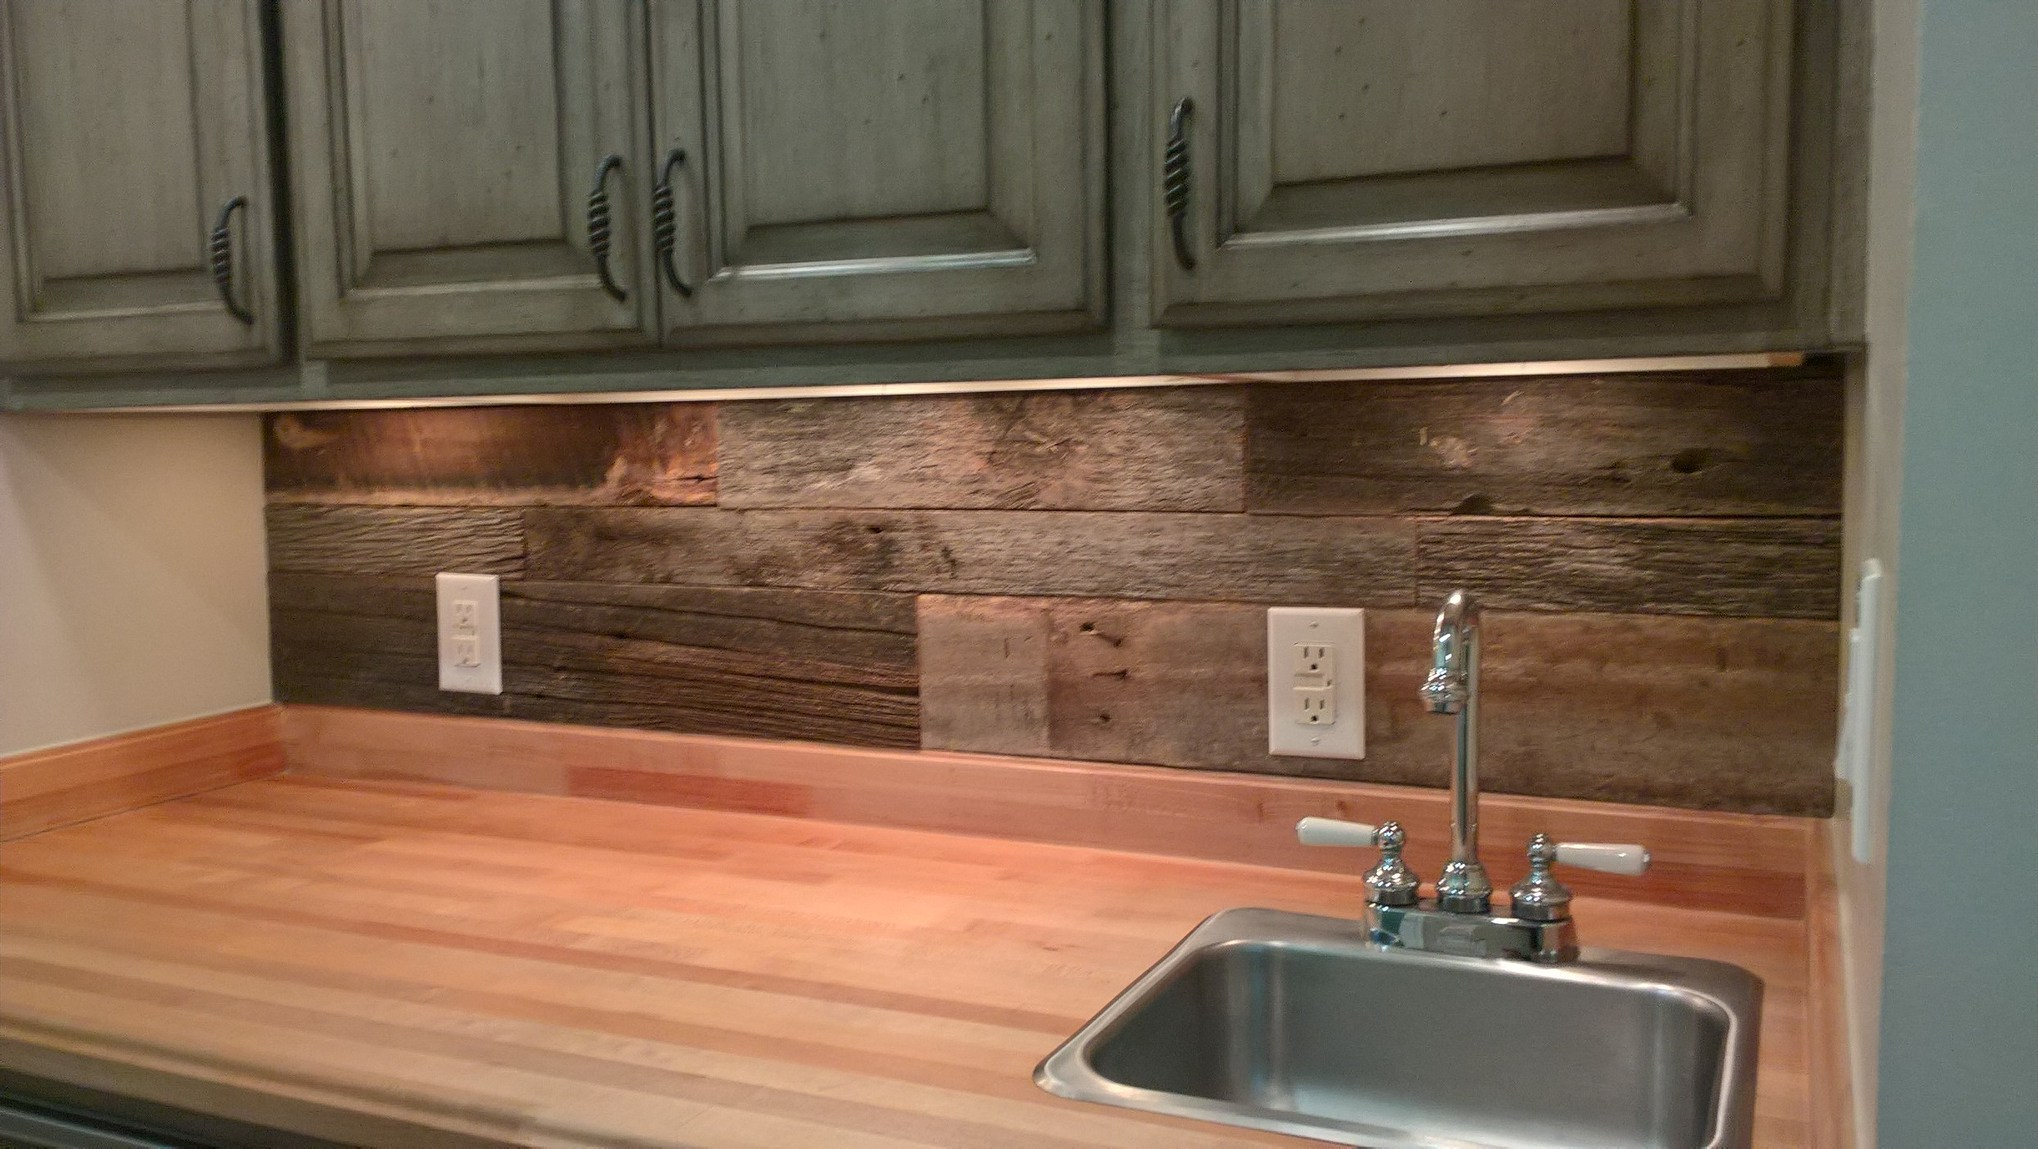 Reclaimed Wood can create a great accent wall to any space. The above picture is a wonderful example of how a little vintage lumber goes a long way. U.S. Reclaimed, Vintage Lumber & Wood Works offers the reclaimed wood needed to panel an accent wall. Visit the store to check out our reclaimed material.